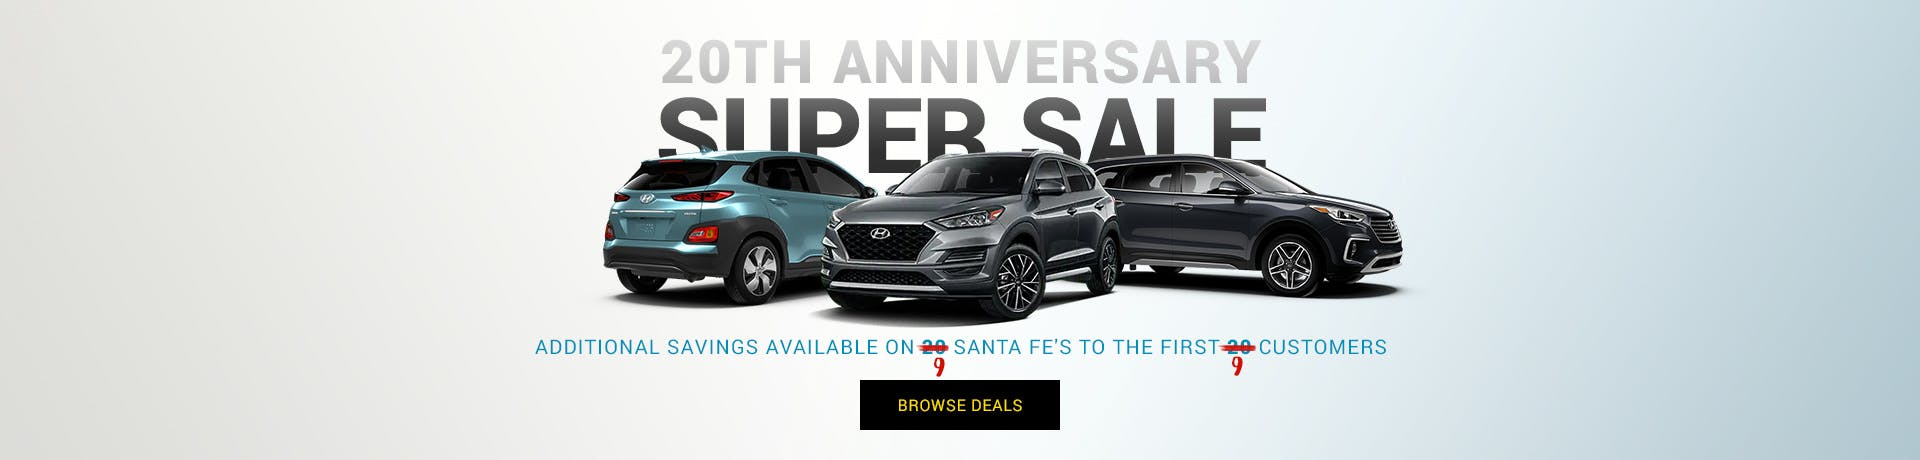 20th Anniversary Super Sale